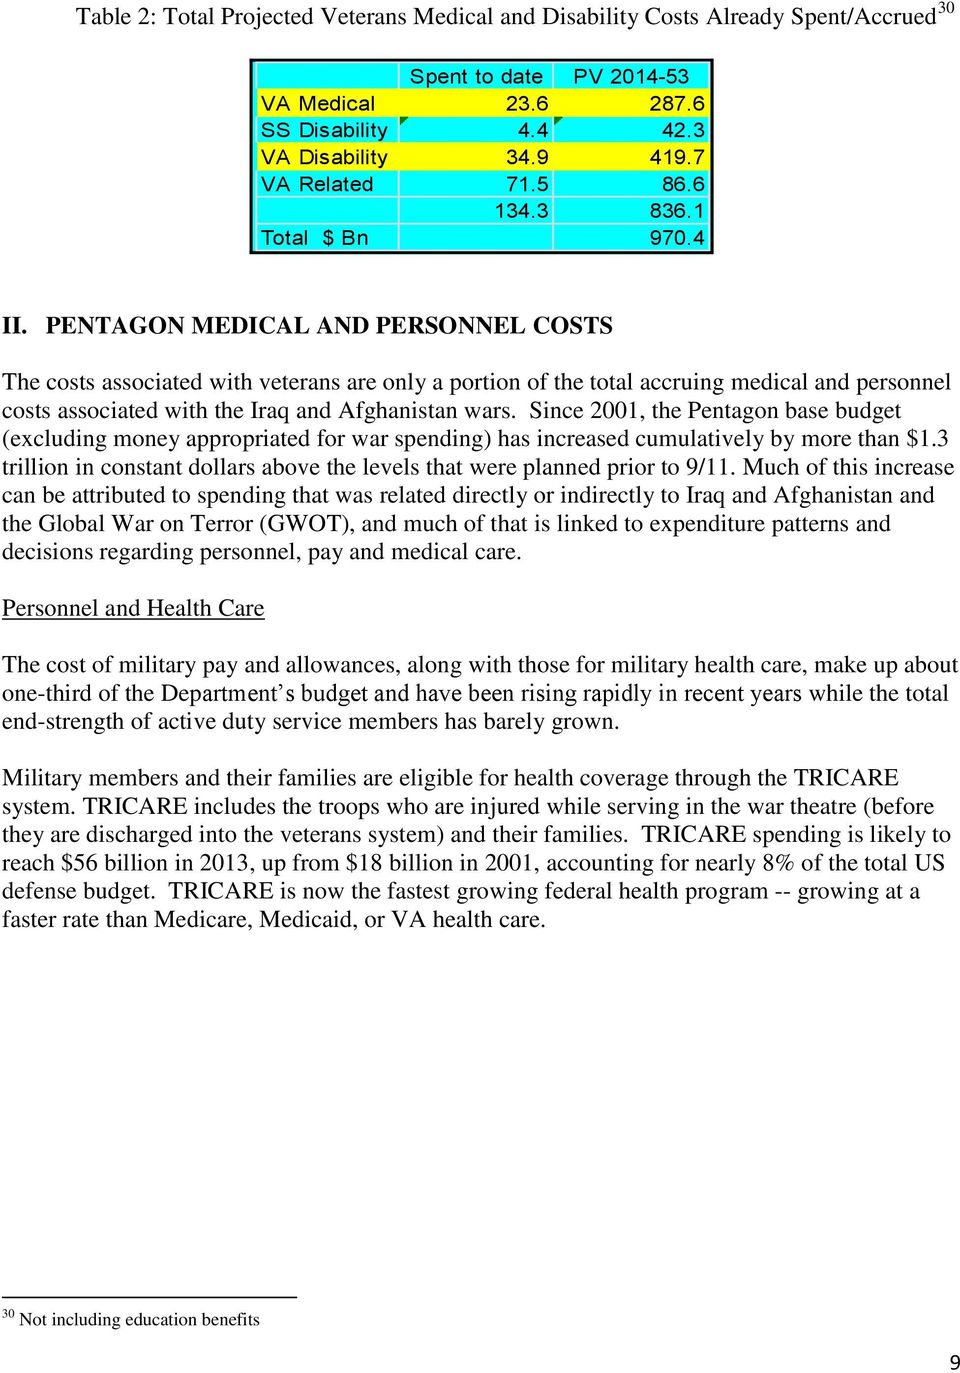 PENTAGON MEDICAL AND PERSONNEL COSTS The costs associated with veterans are only a portion of the total accruing medical and personnel costs associated with the Iraq and Afghanistan wars.